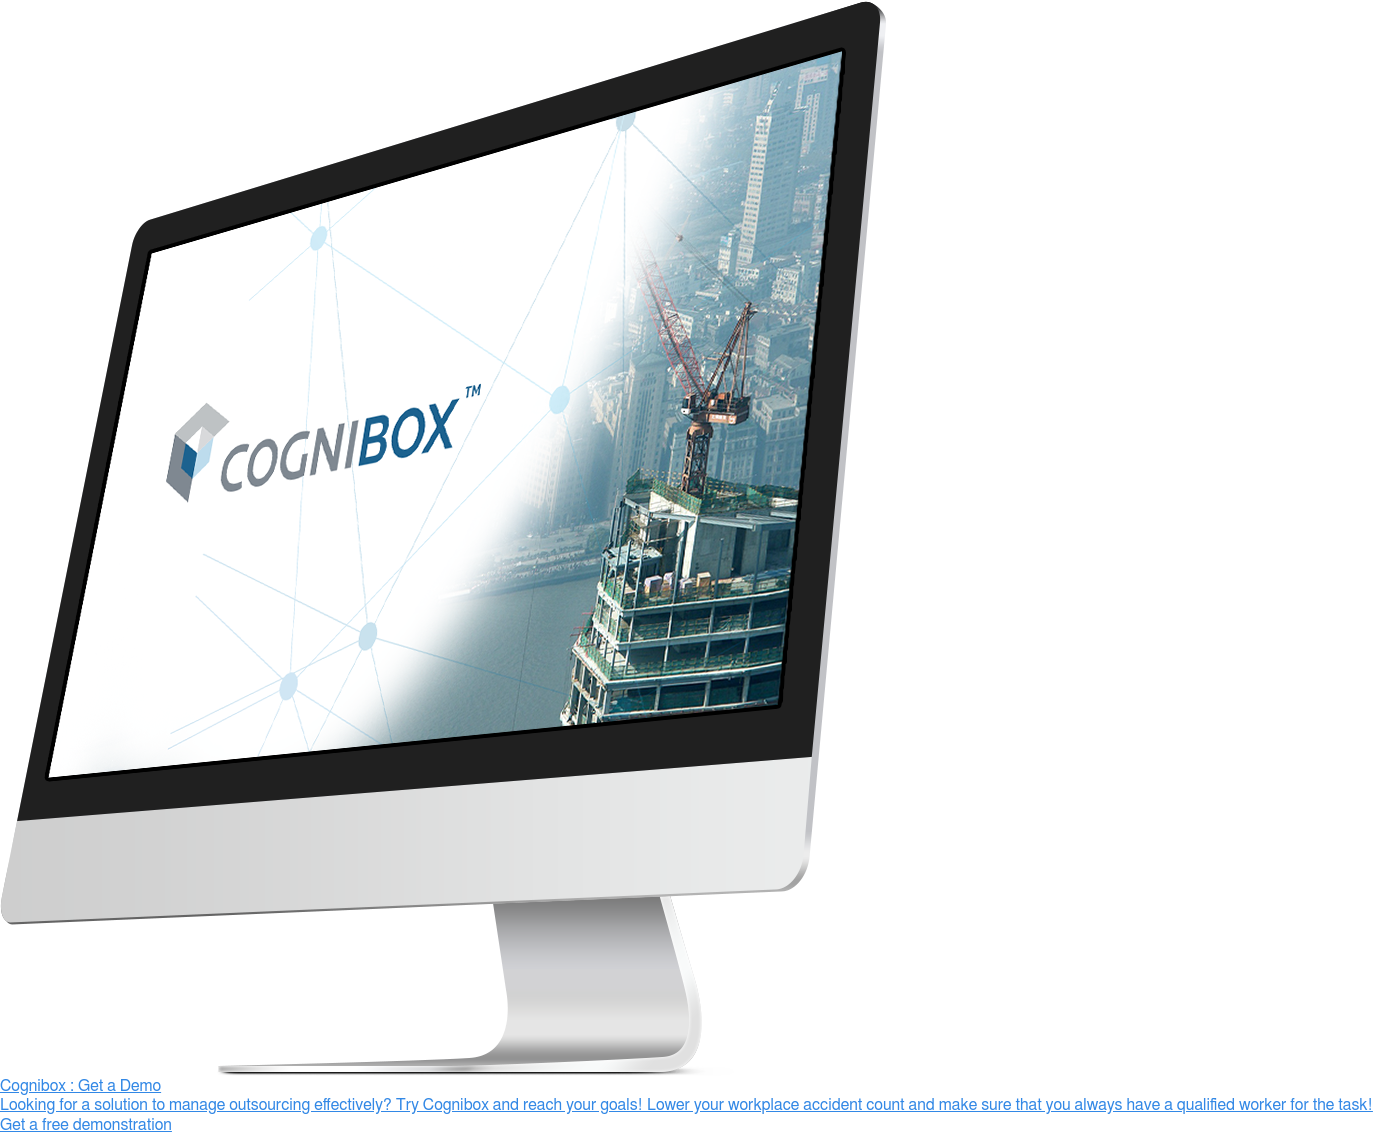 Cognibox : Get a Demo  Looking for a solution to manage outsourcing effectively? Try Cognibox and  reach your goals! Lower your workplace accident count and make you sure you  always have a qualified worker for the task! Get a free demonstration <>